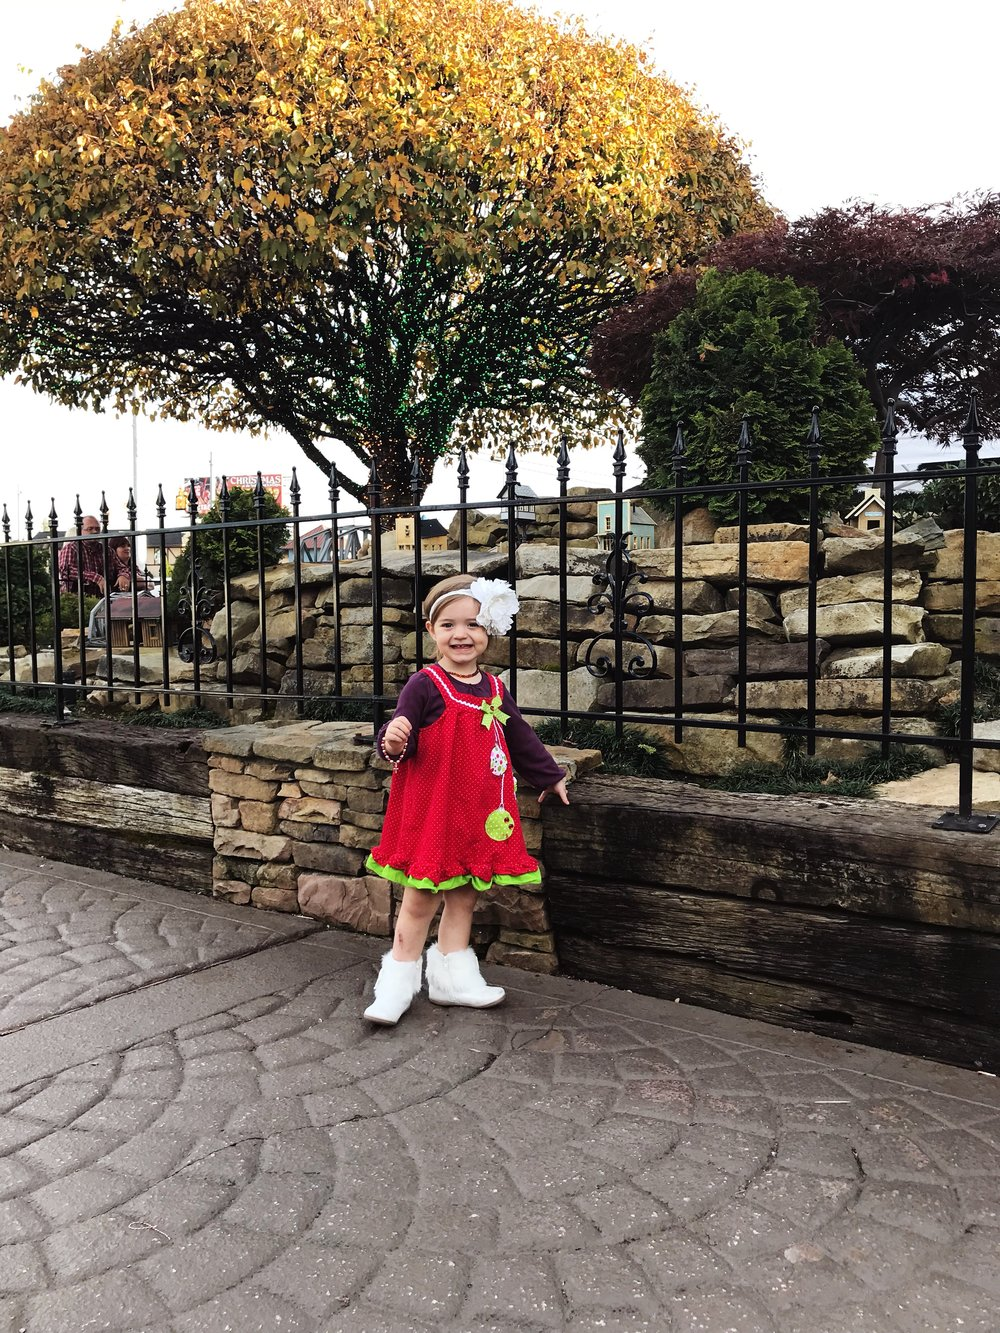 The Christmas Place Family Attraction in Pigeon Forge, Tennessee | Mallorie Owens